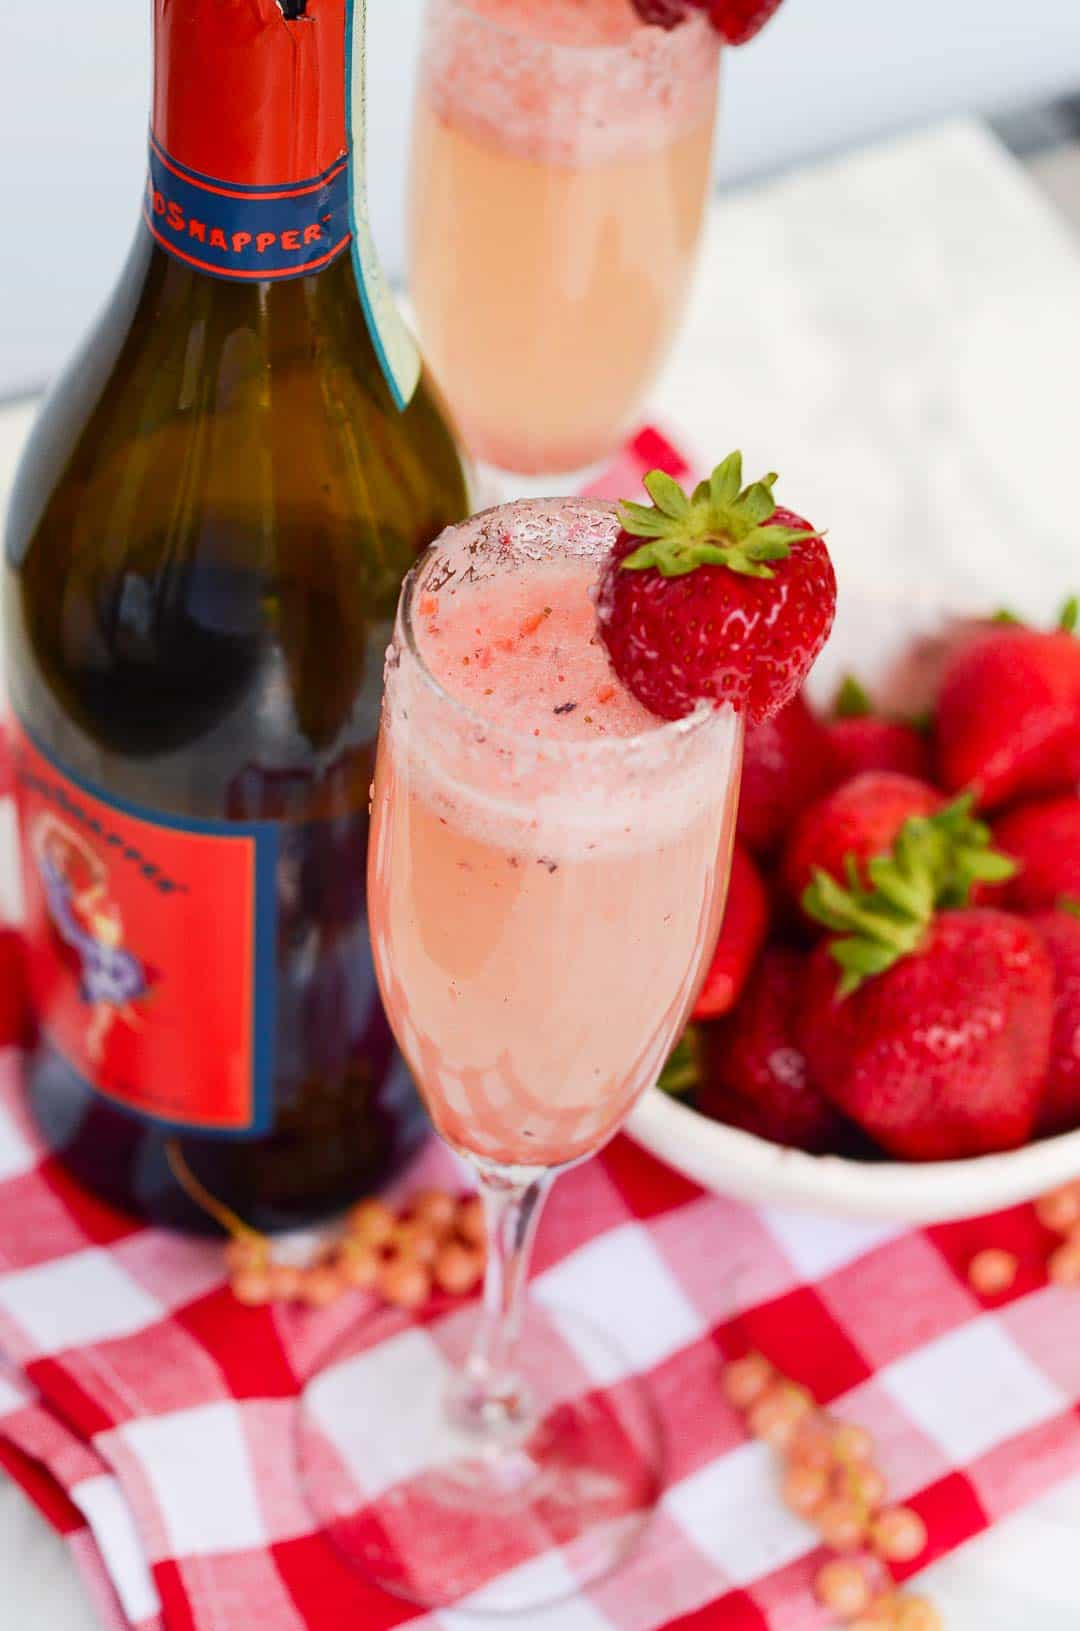 Toast your day and use fresh summer produce with this semi-sweet Strawberry and White Currant Bellini Cocktail. Day drinking never tasted so good!